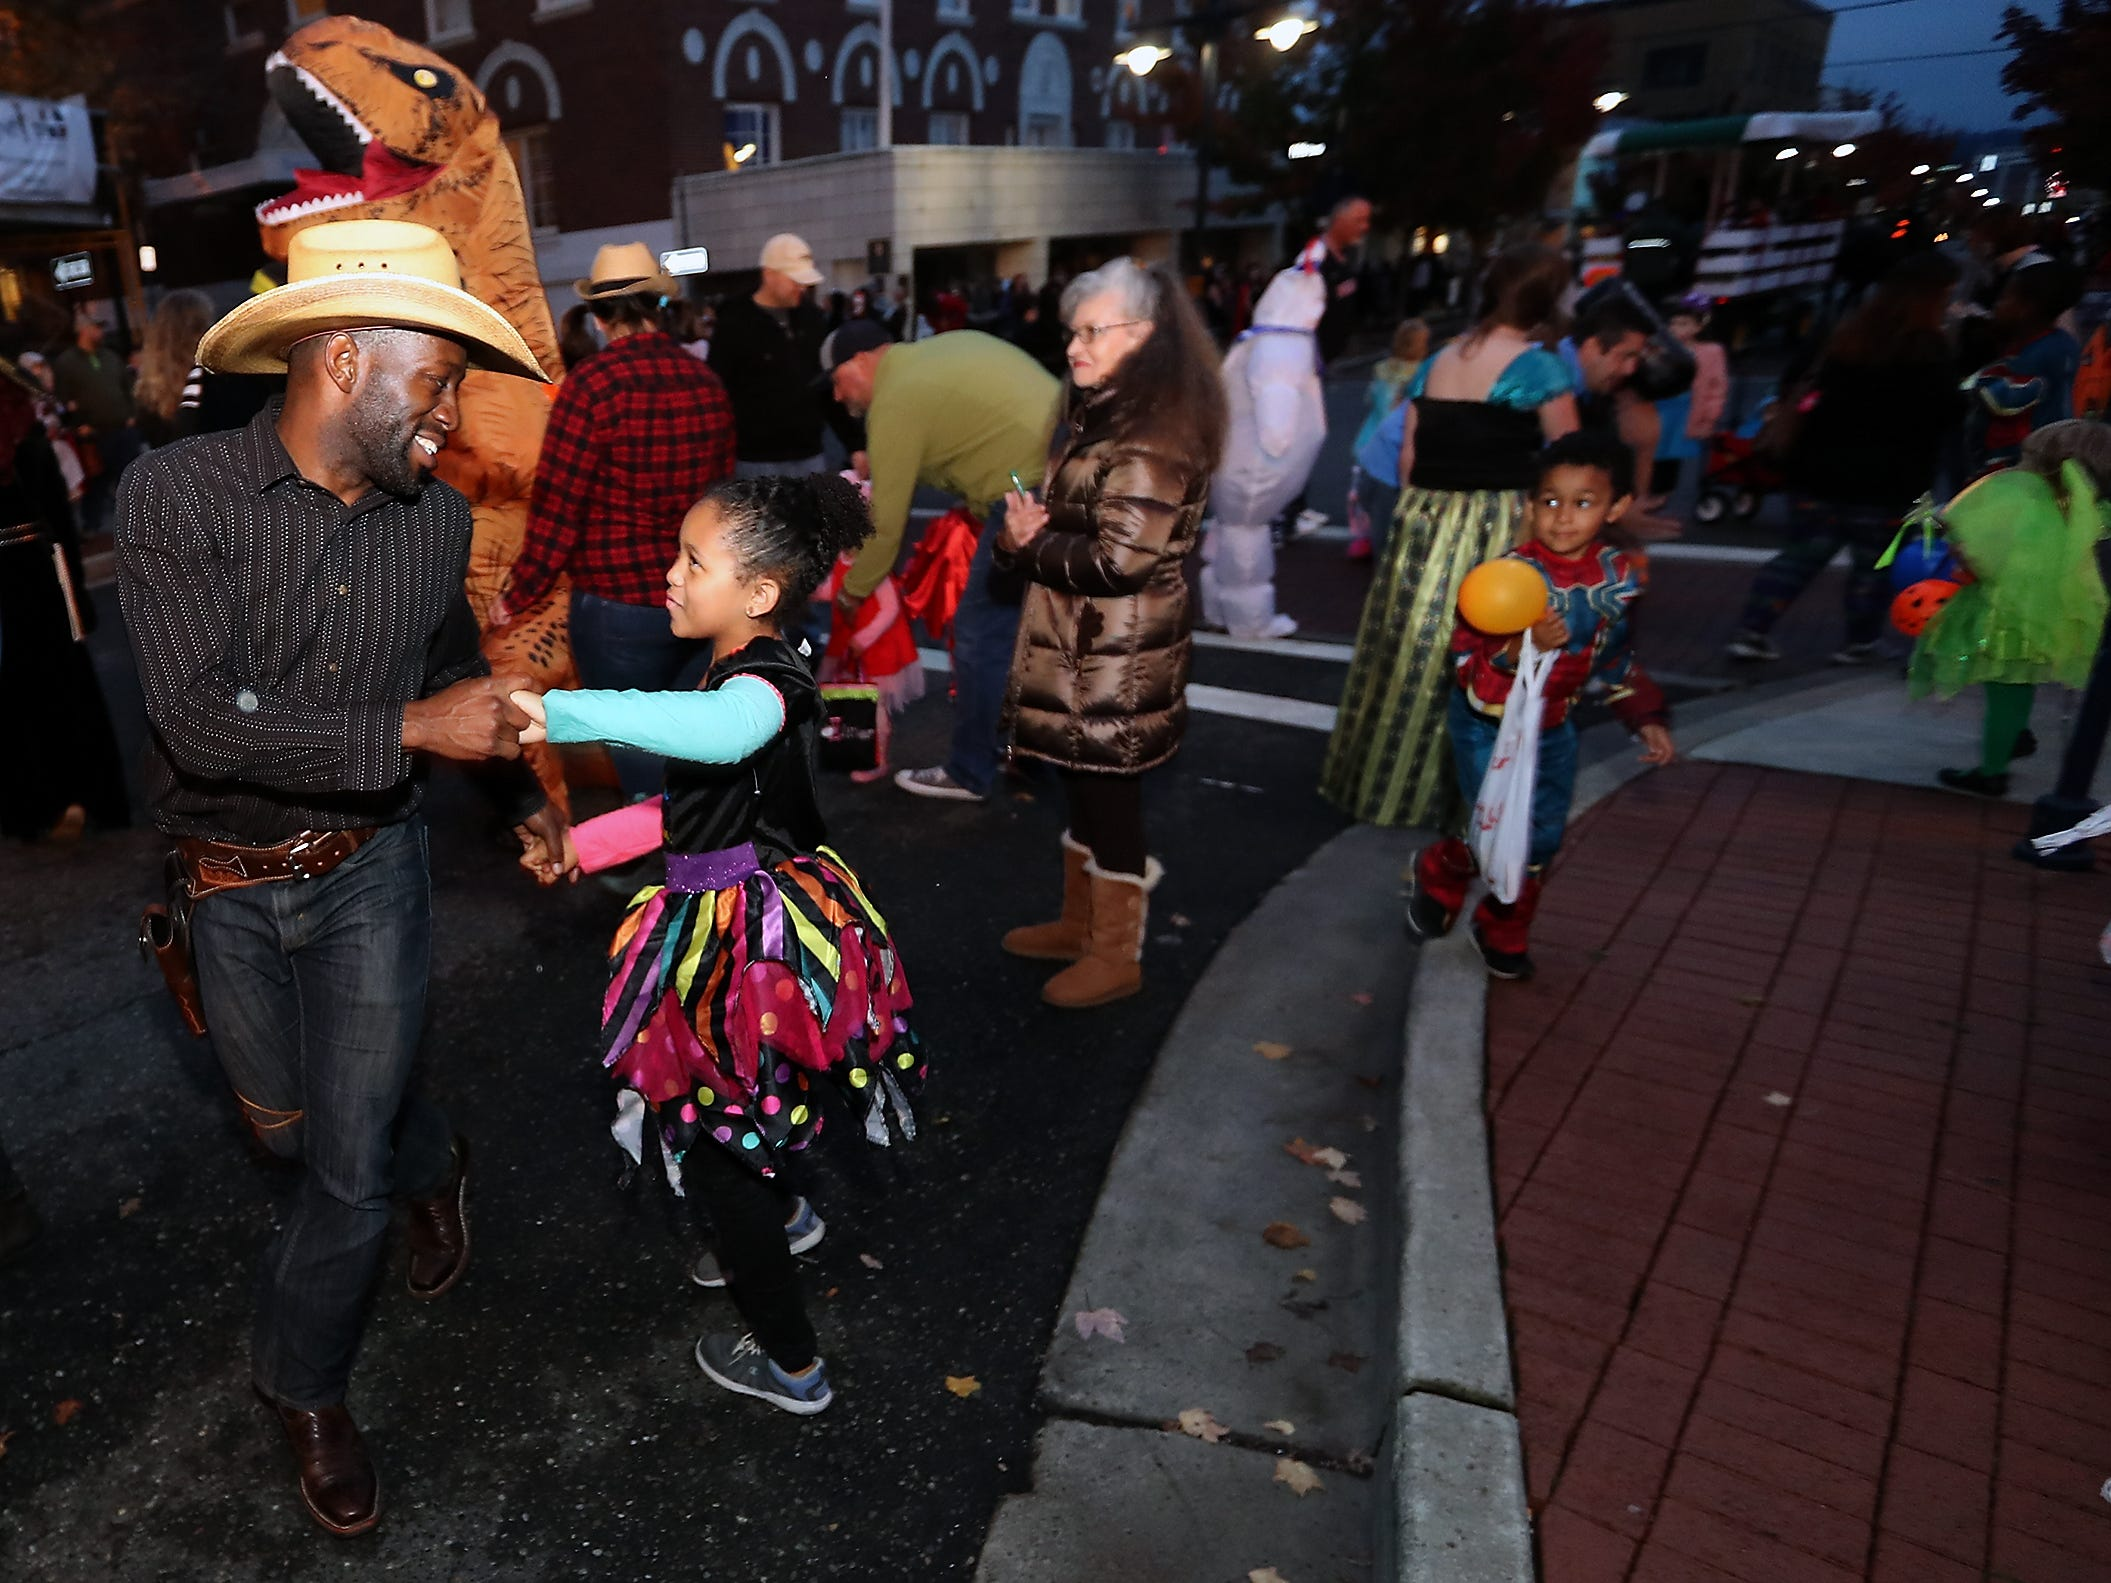 Fidel Forde dances with his daughter Adeline, 9, to the music filling the street in front of the Admiral Theatre during Downtown Bremerton's Trick or Treat Street on Wednesday, October 31, 2018.